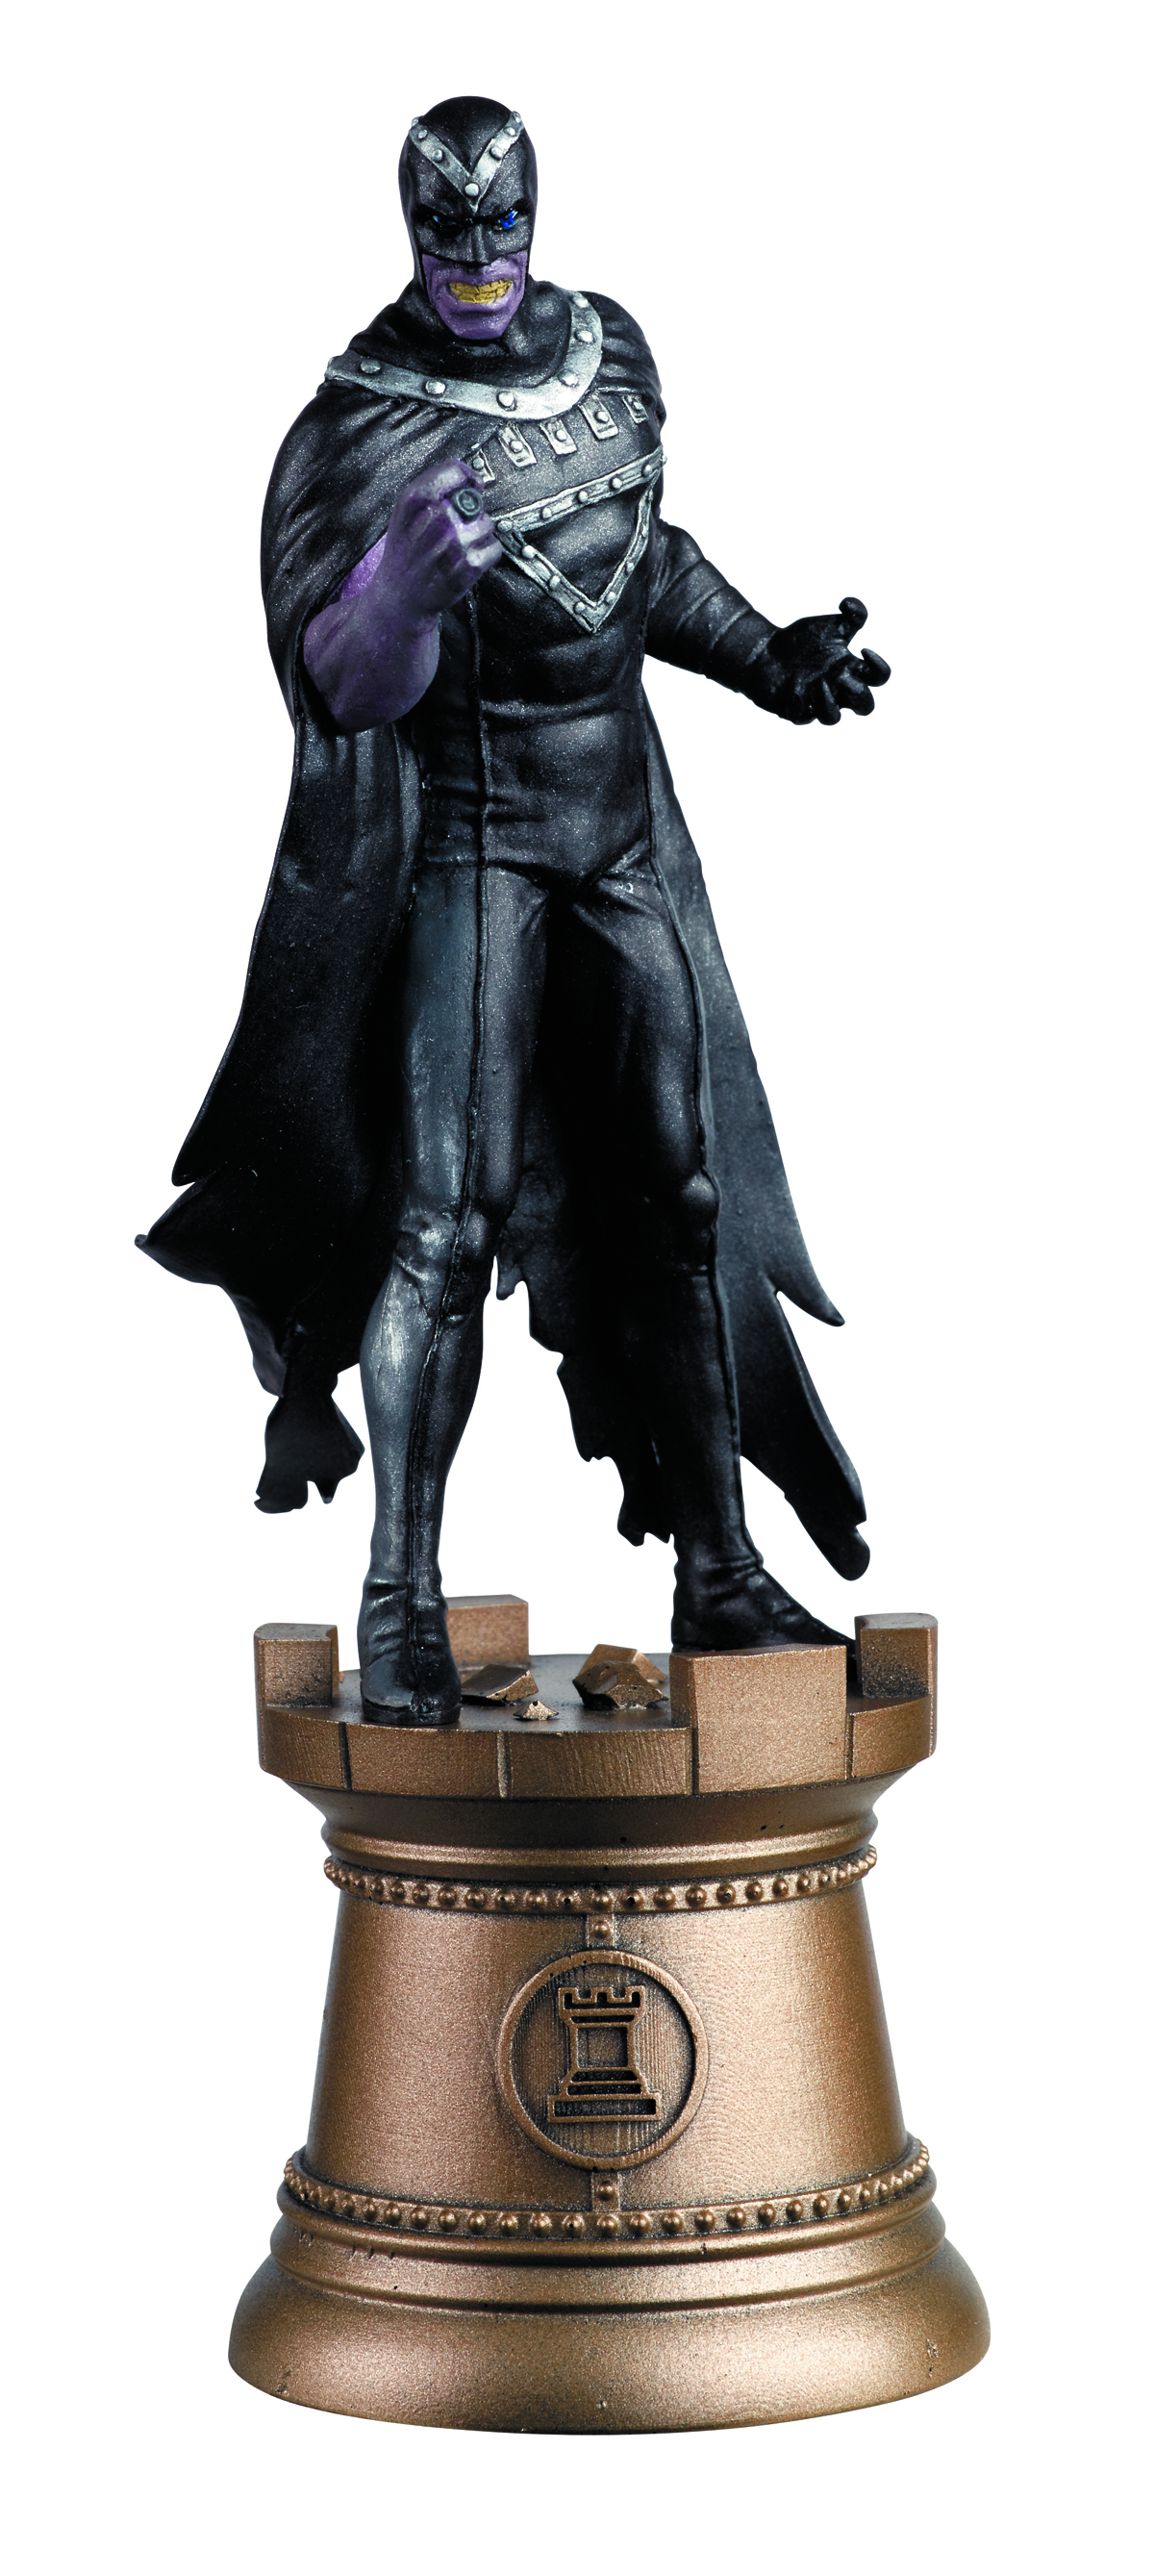 DC SUPERHERO CHESS FIG COLL MAG #94 BLACK HAND BLACK ROOK